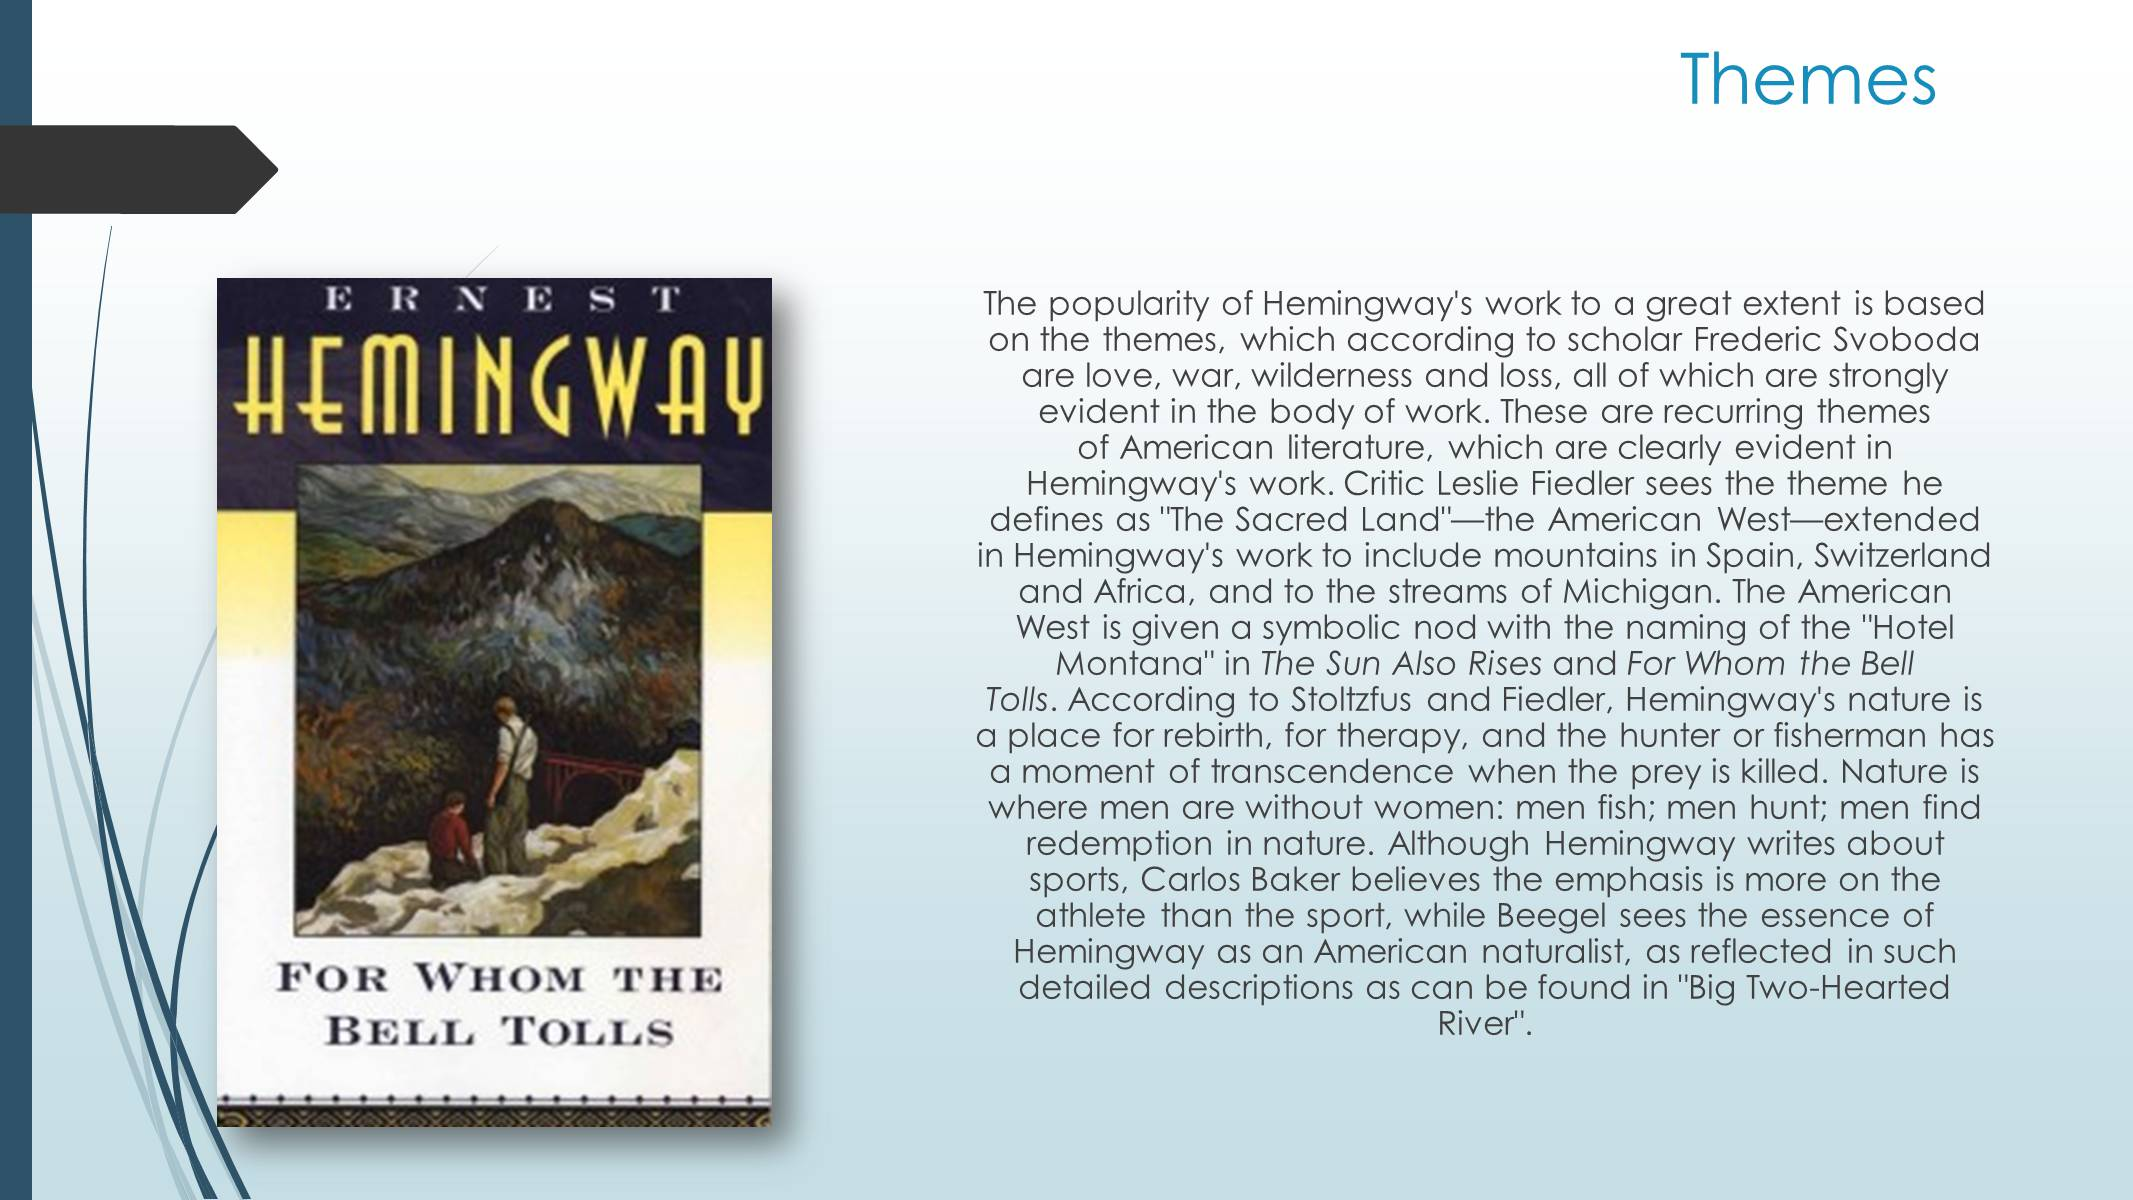 the theme of death in selected works of ernest hemingway essay Death is a major theme in ernest hemingway's short story the snows of kilimanjaro and it appears in several different forms, directly and indirectly the most obvious reference to death is the injury of the protagonist harry and the way he realizes that he has little time left to live.